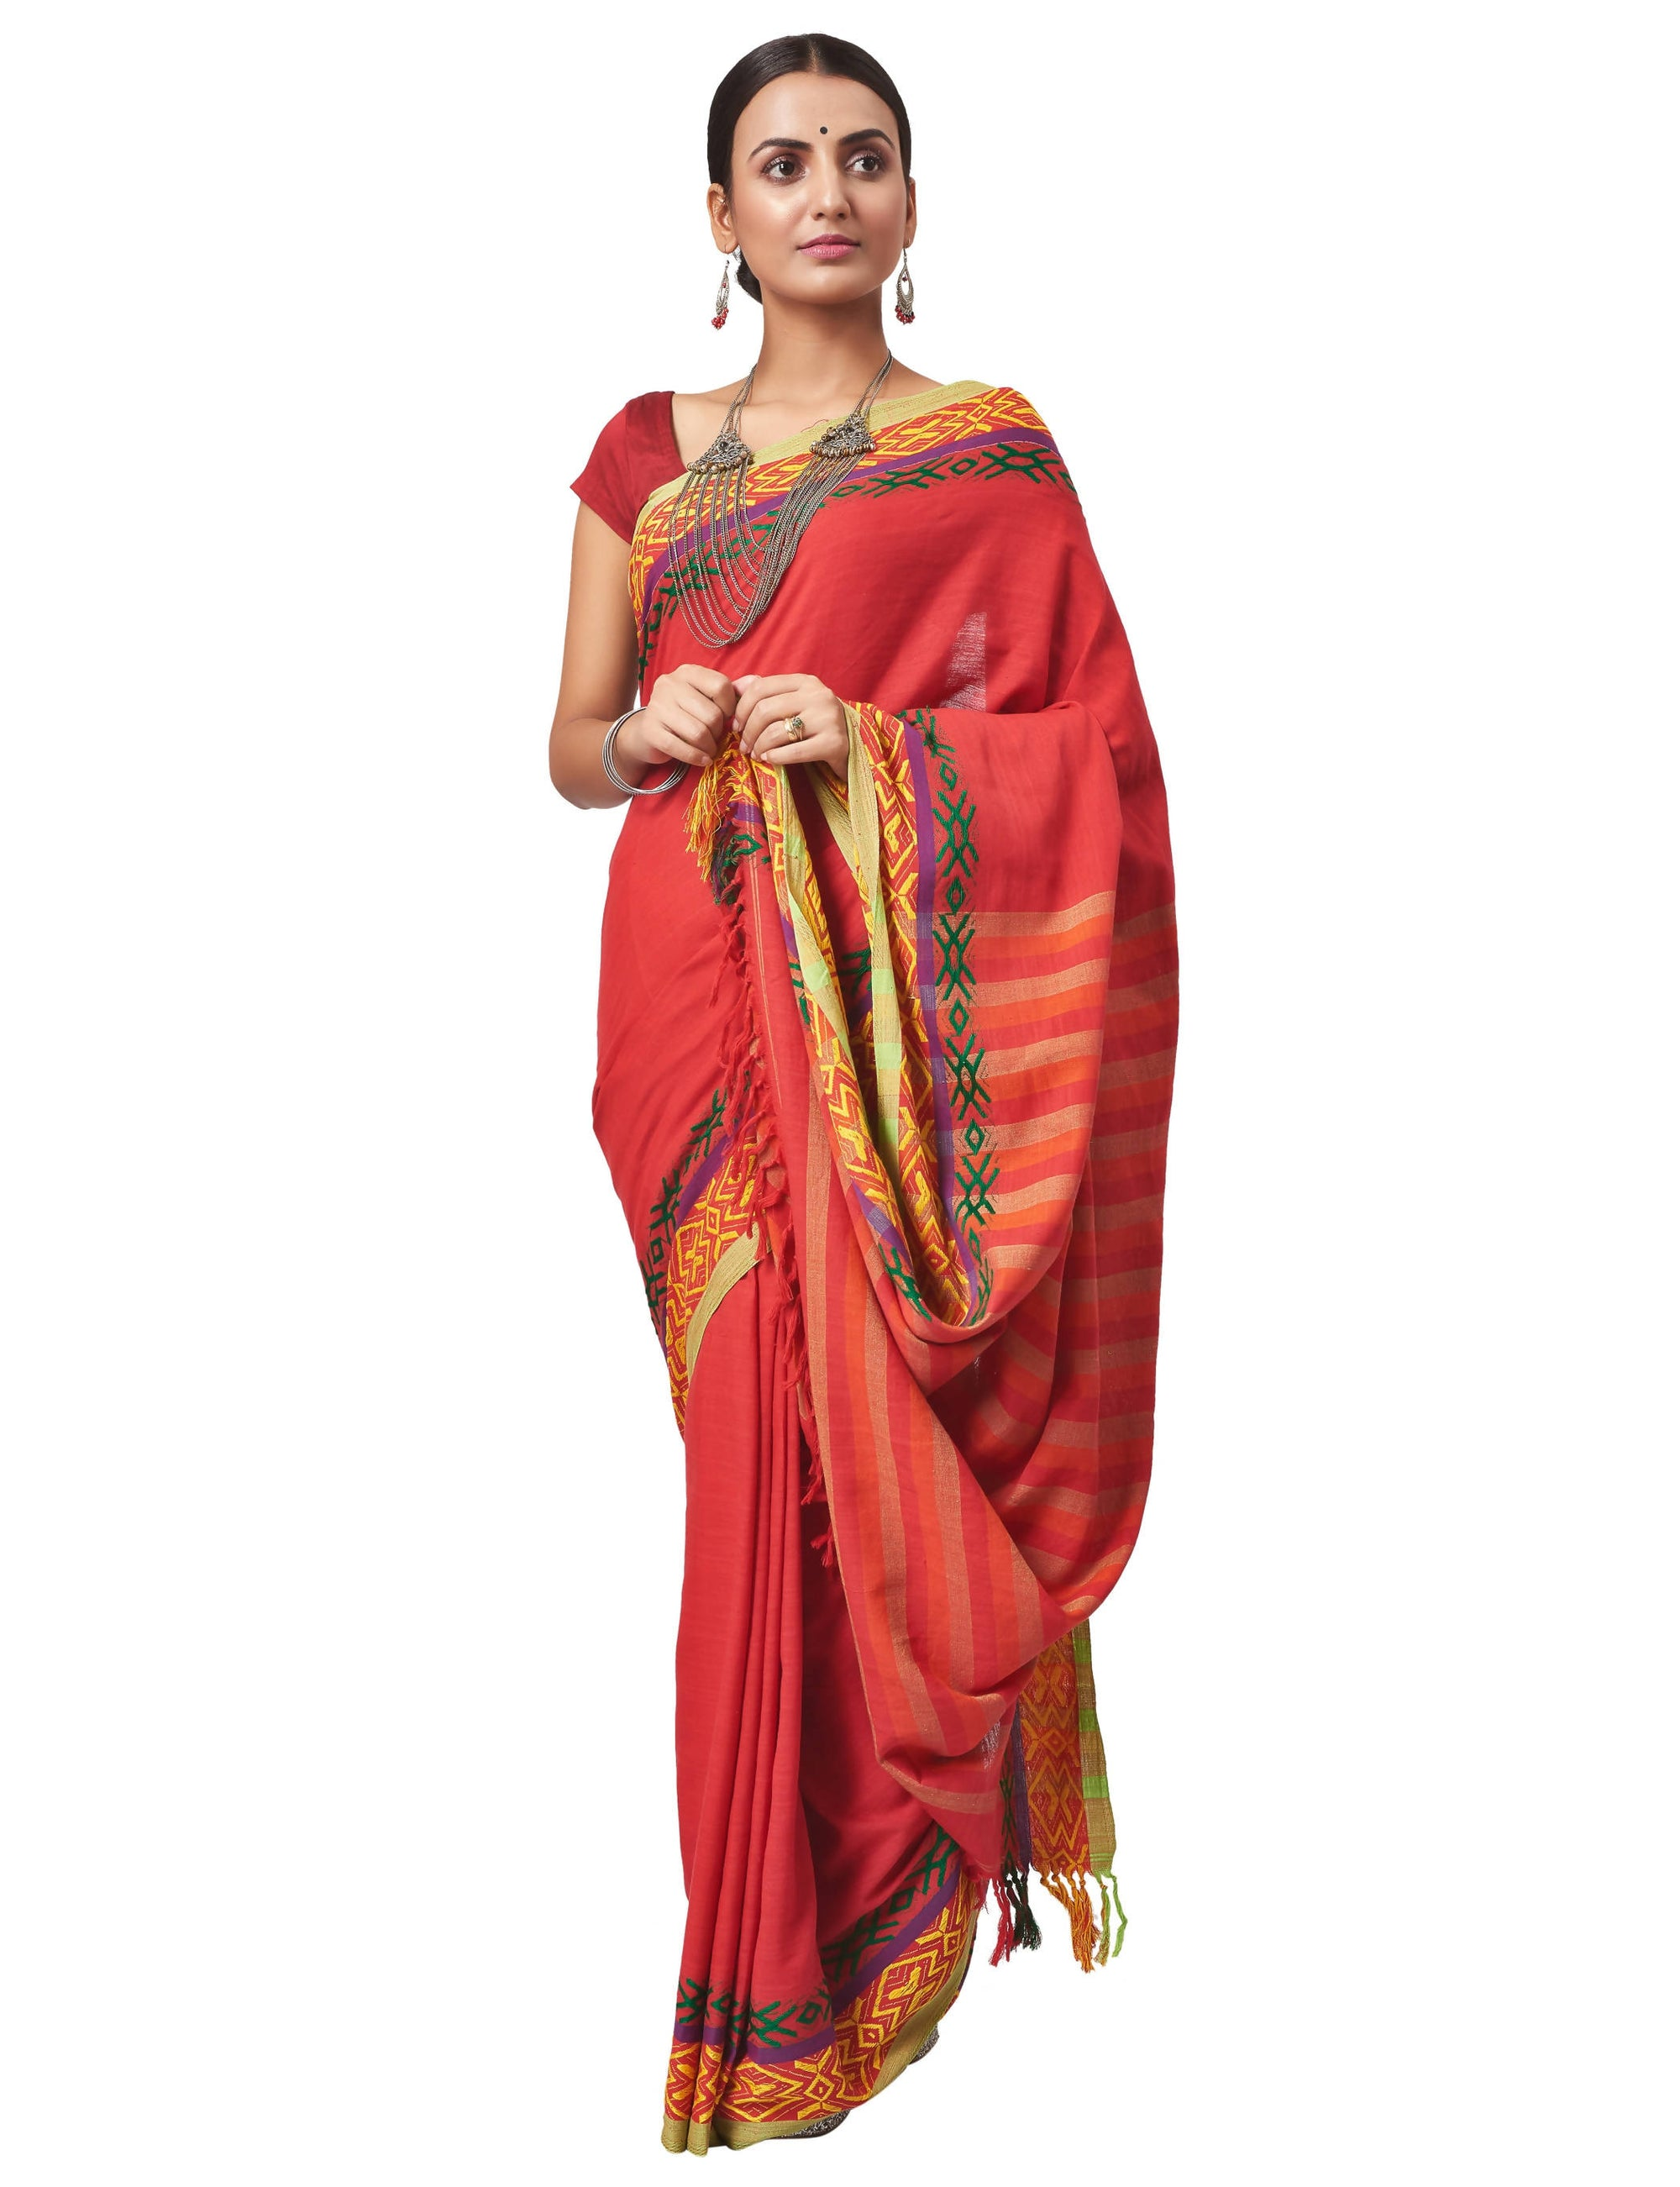 Biswa Bangla Handloom Dokhna Cotton Saree - Red